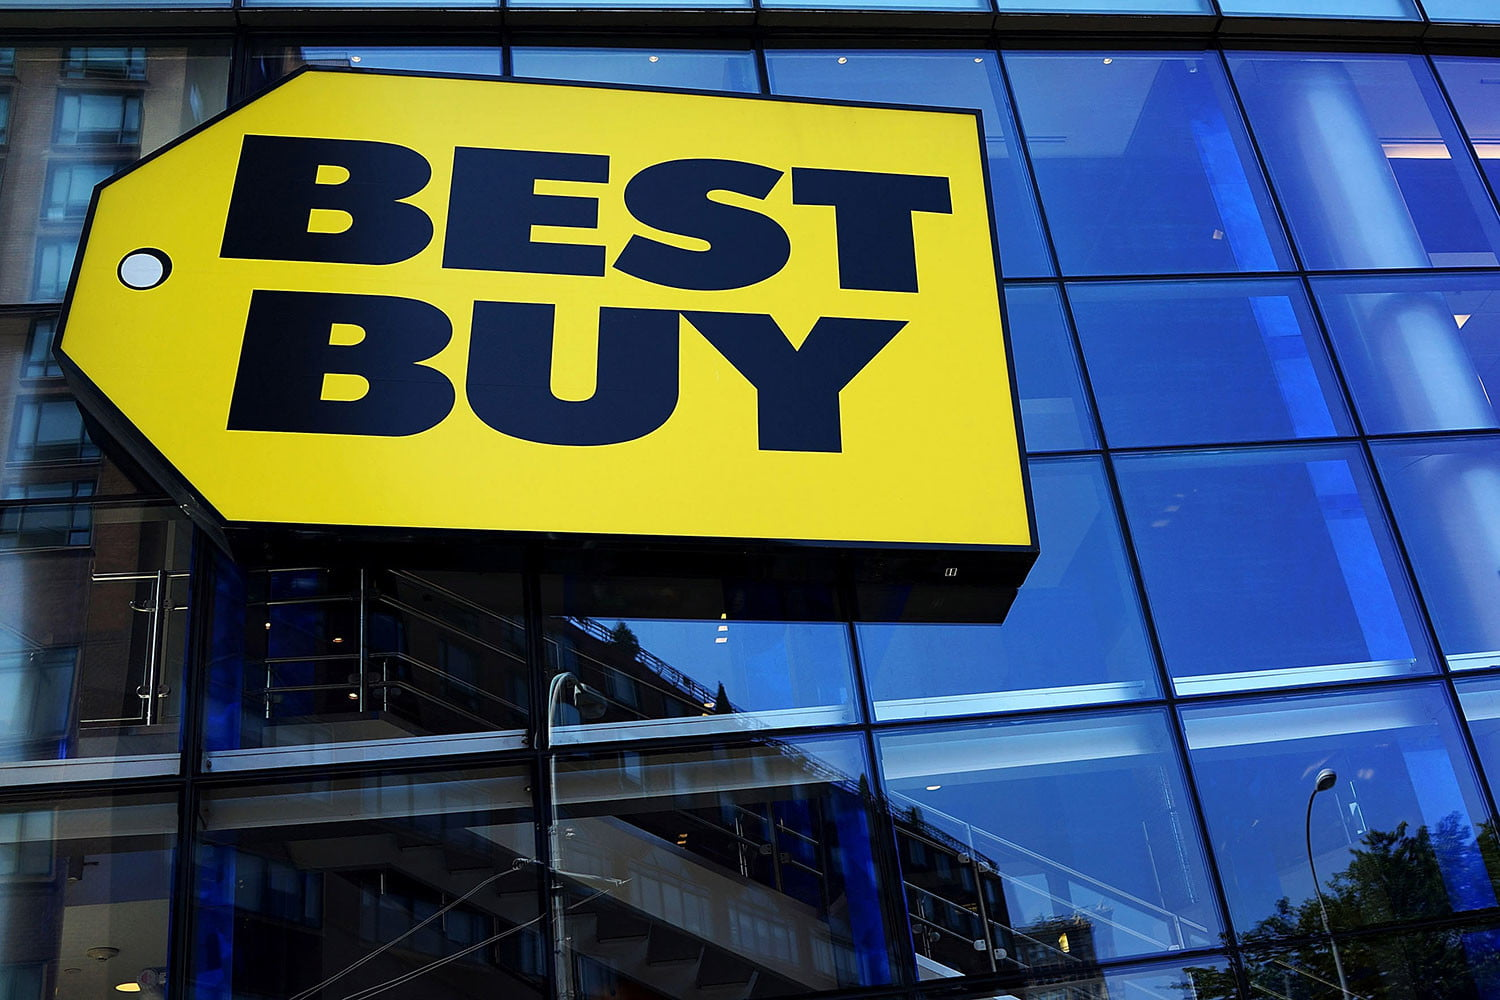 Best Buy offers up to 40% off refrigerators, washers, dryers and other large appliances